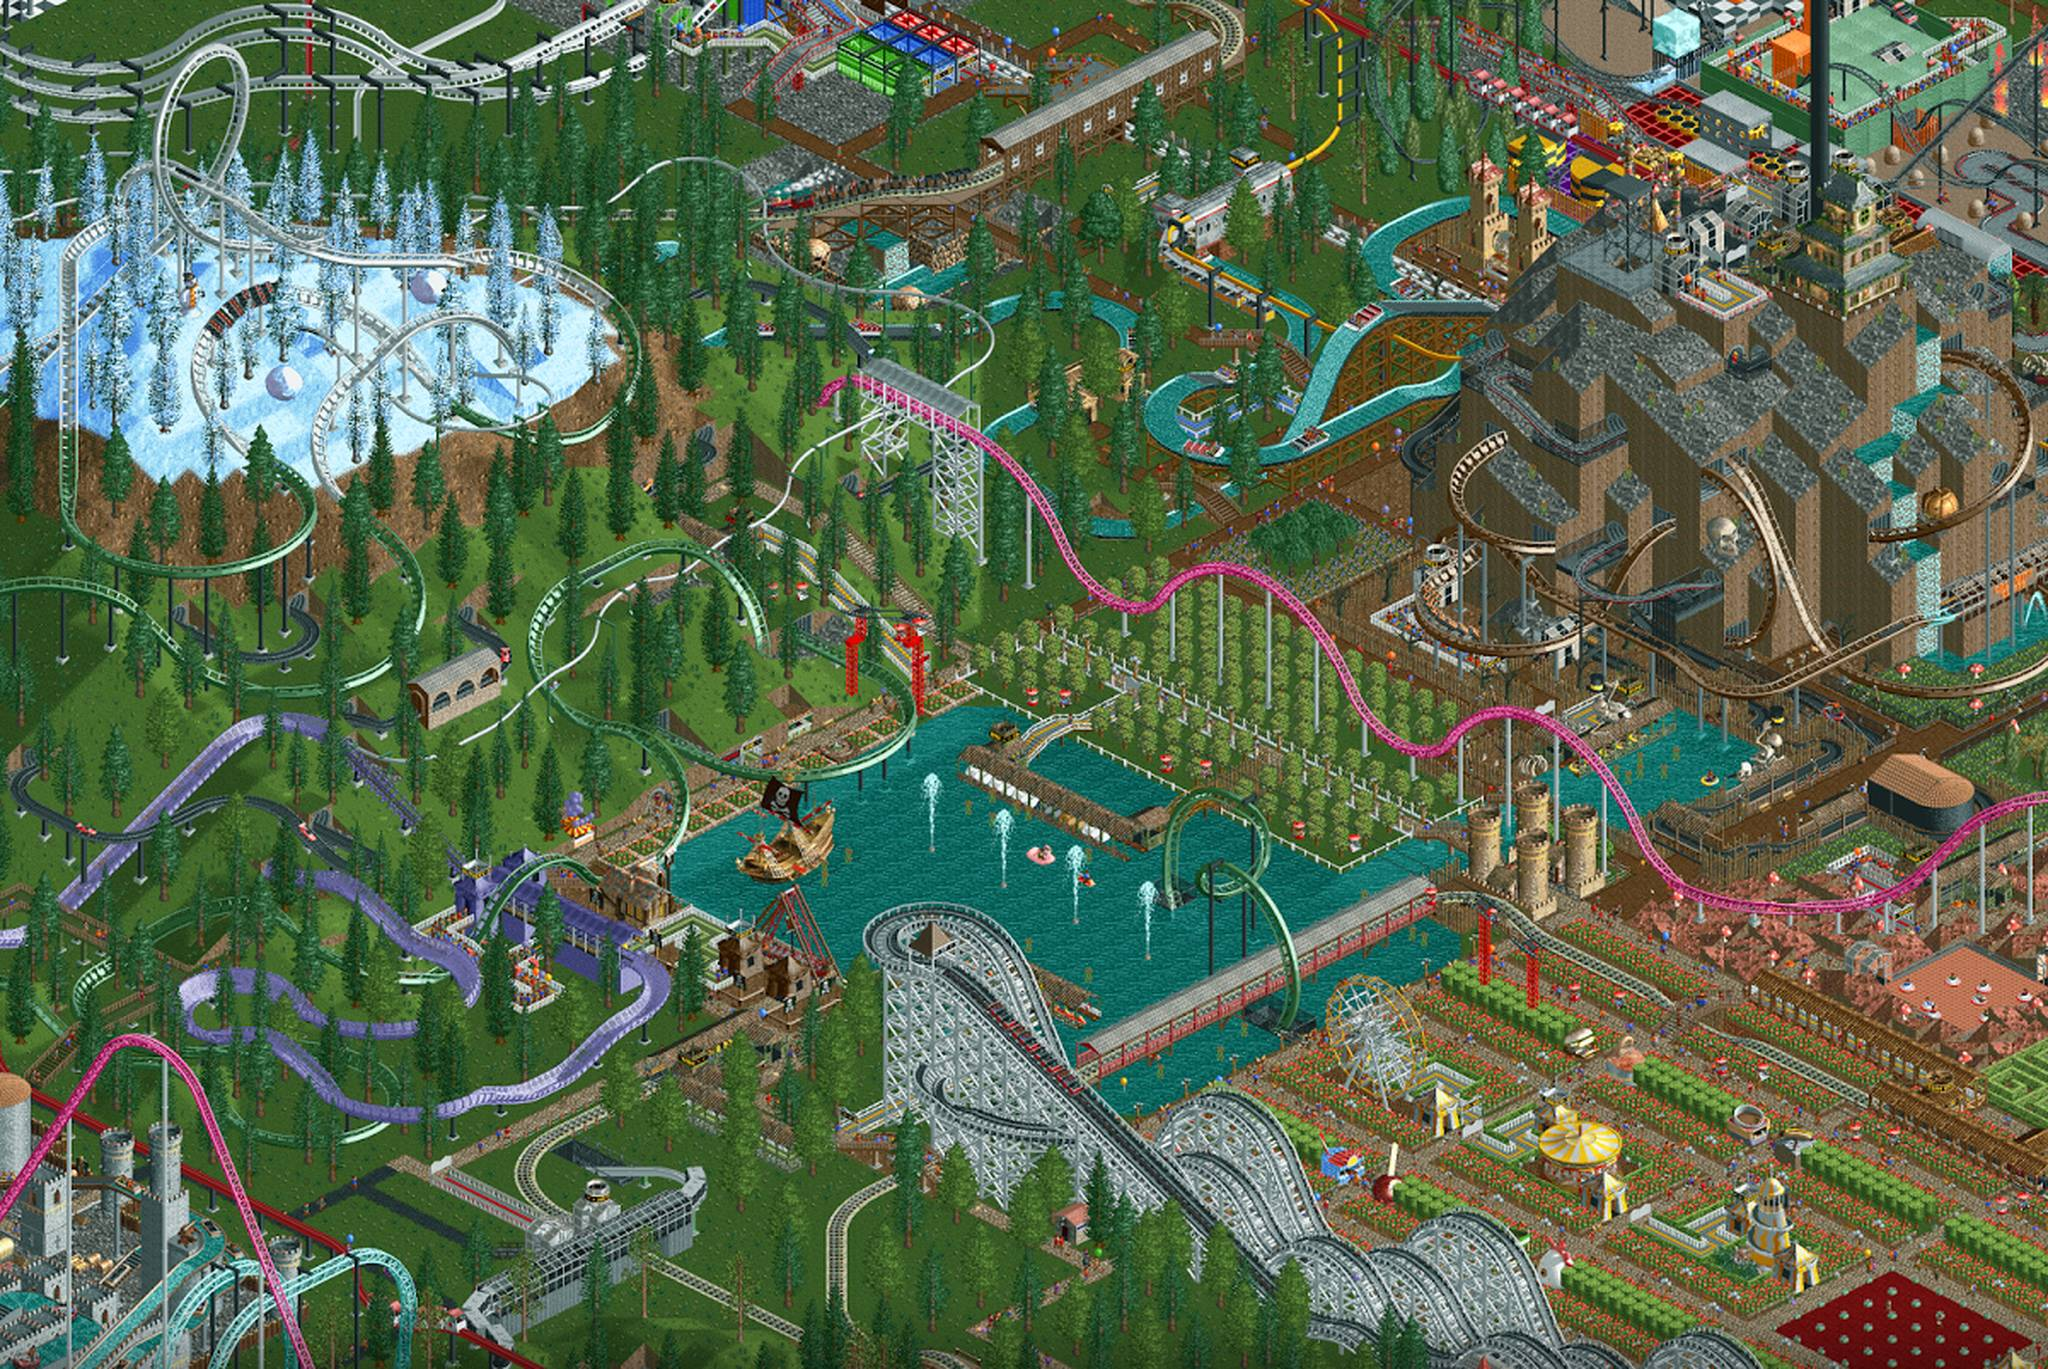 Atari releases RollerCoaster Tycoon Classic on iOS and Android